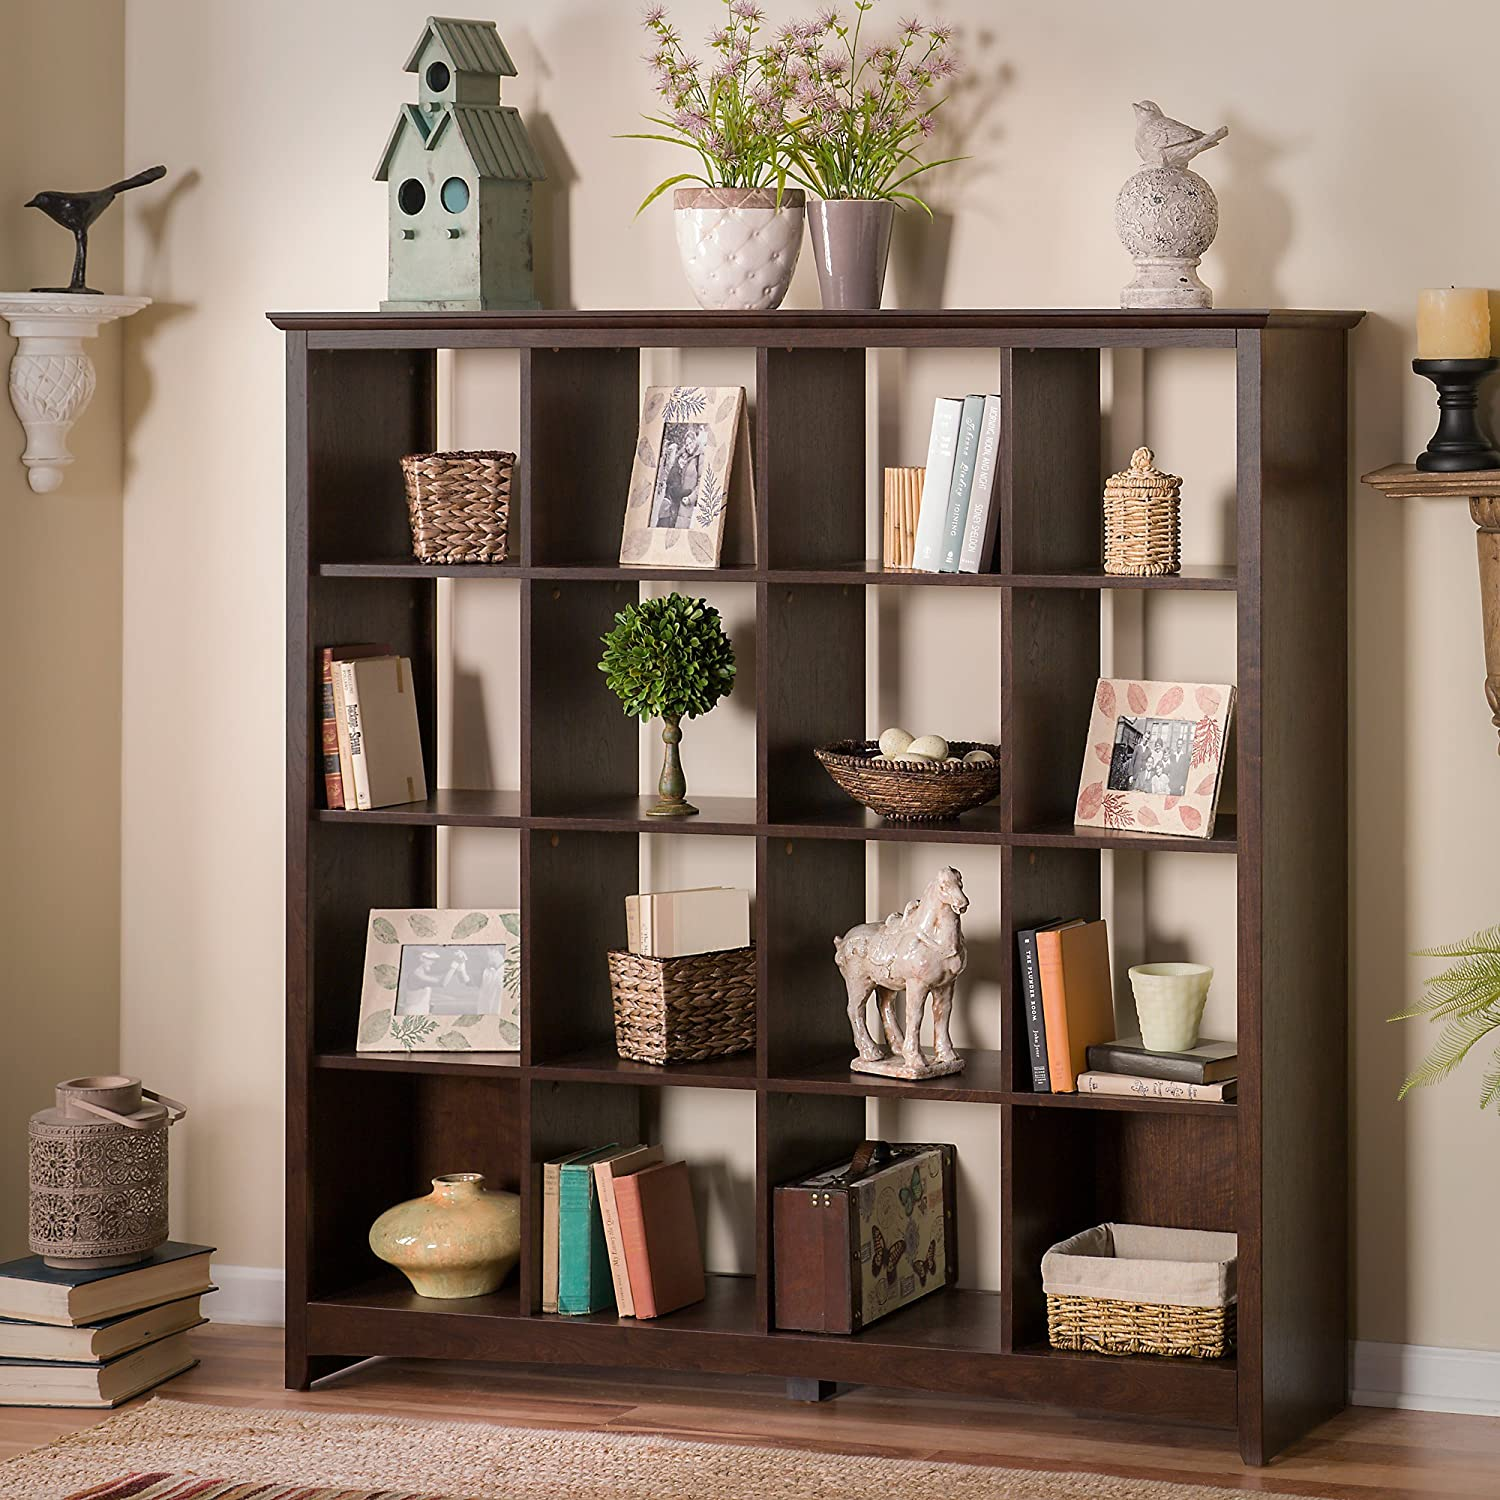 Bush Furniture Buena Vista 16 Cube Large Bookshelf in in, Madison Cherry